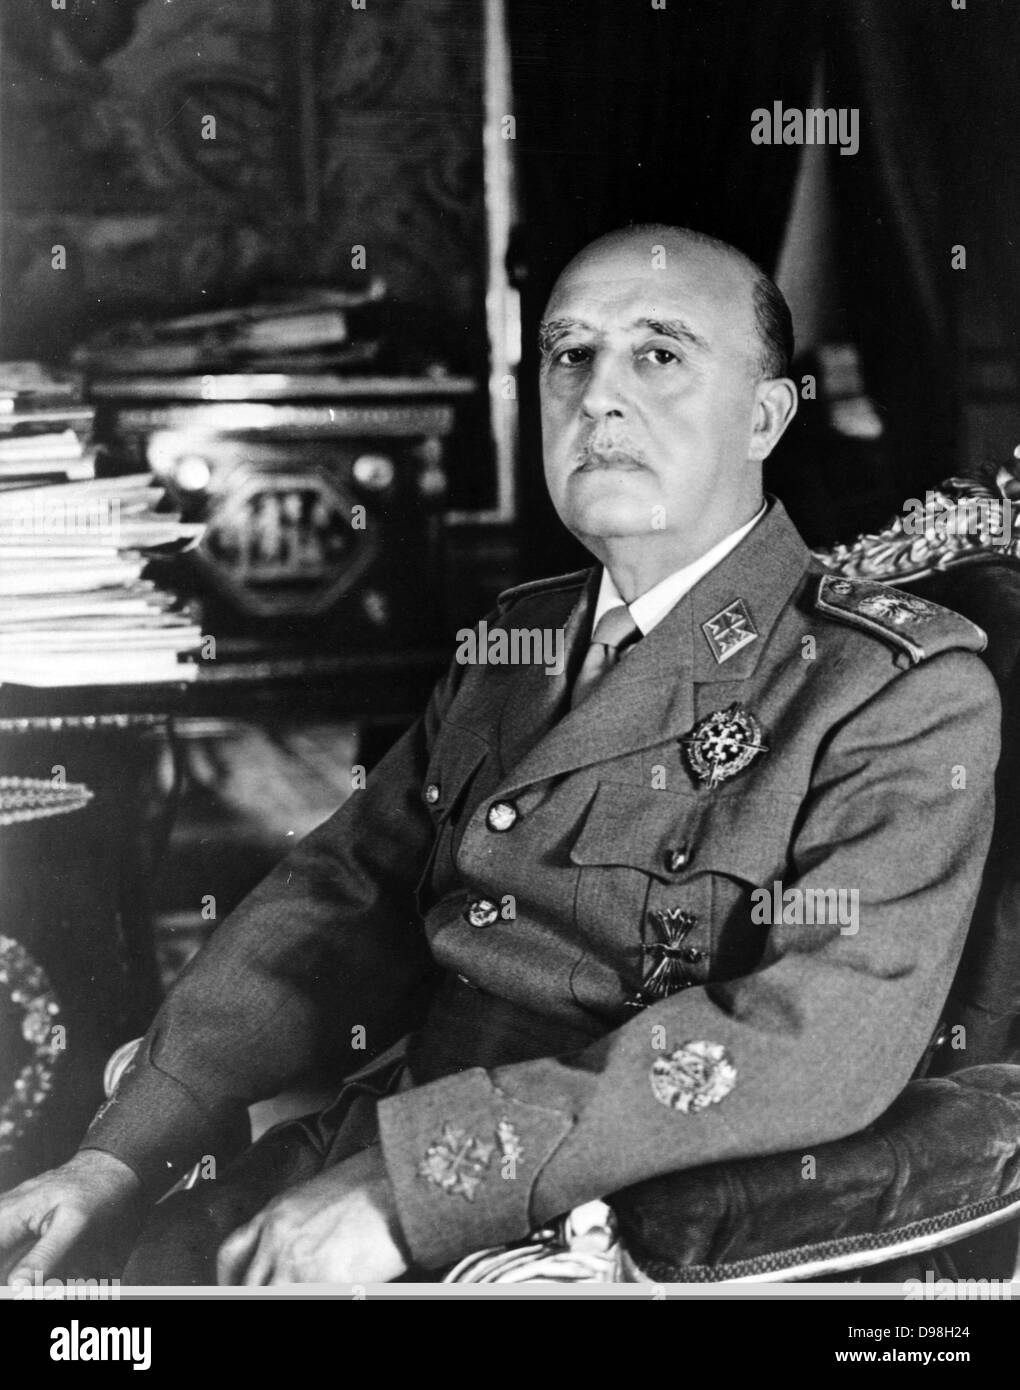 Francisco Franco (4 December 1892 – 20 November 1975), Spanish dictator, military general and head of state of Spain - Stock Image